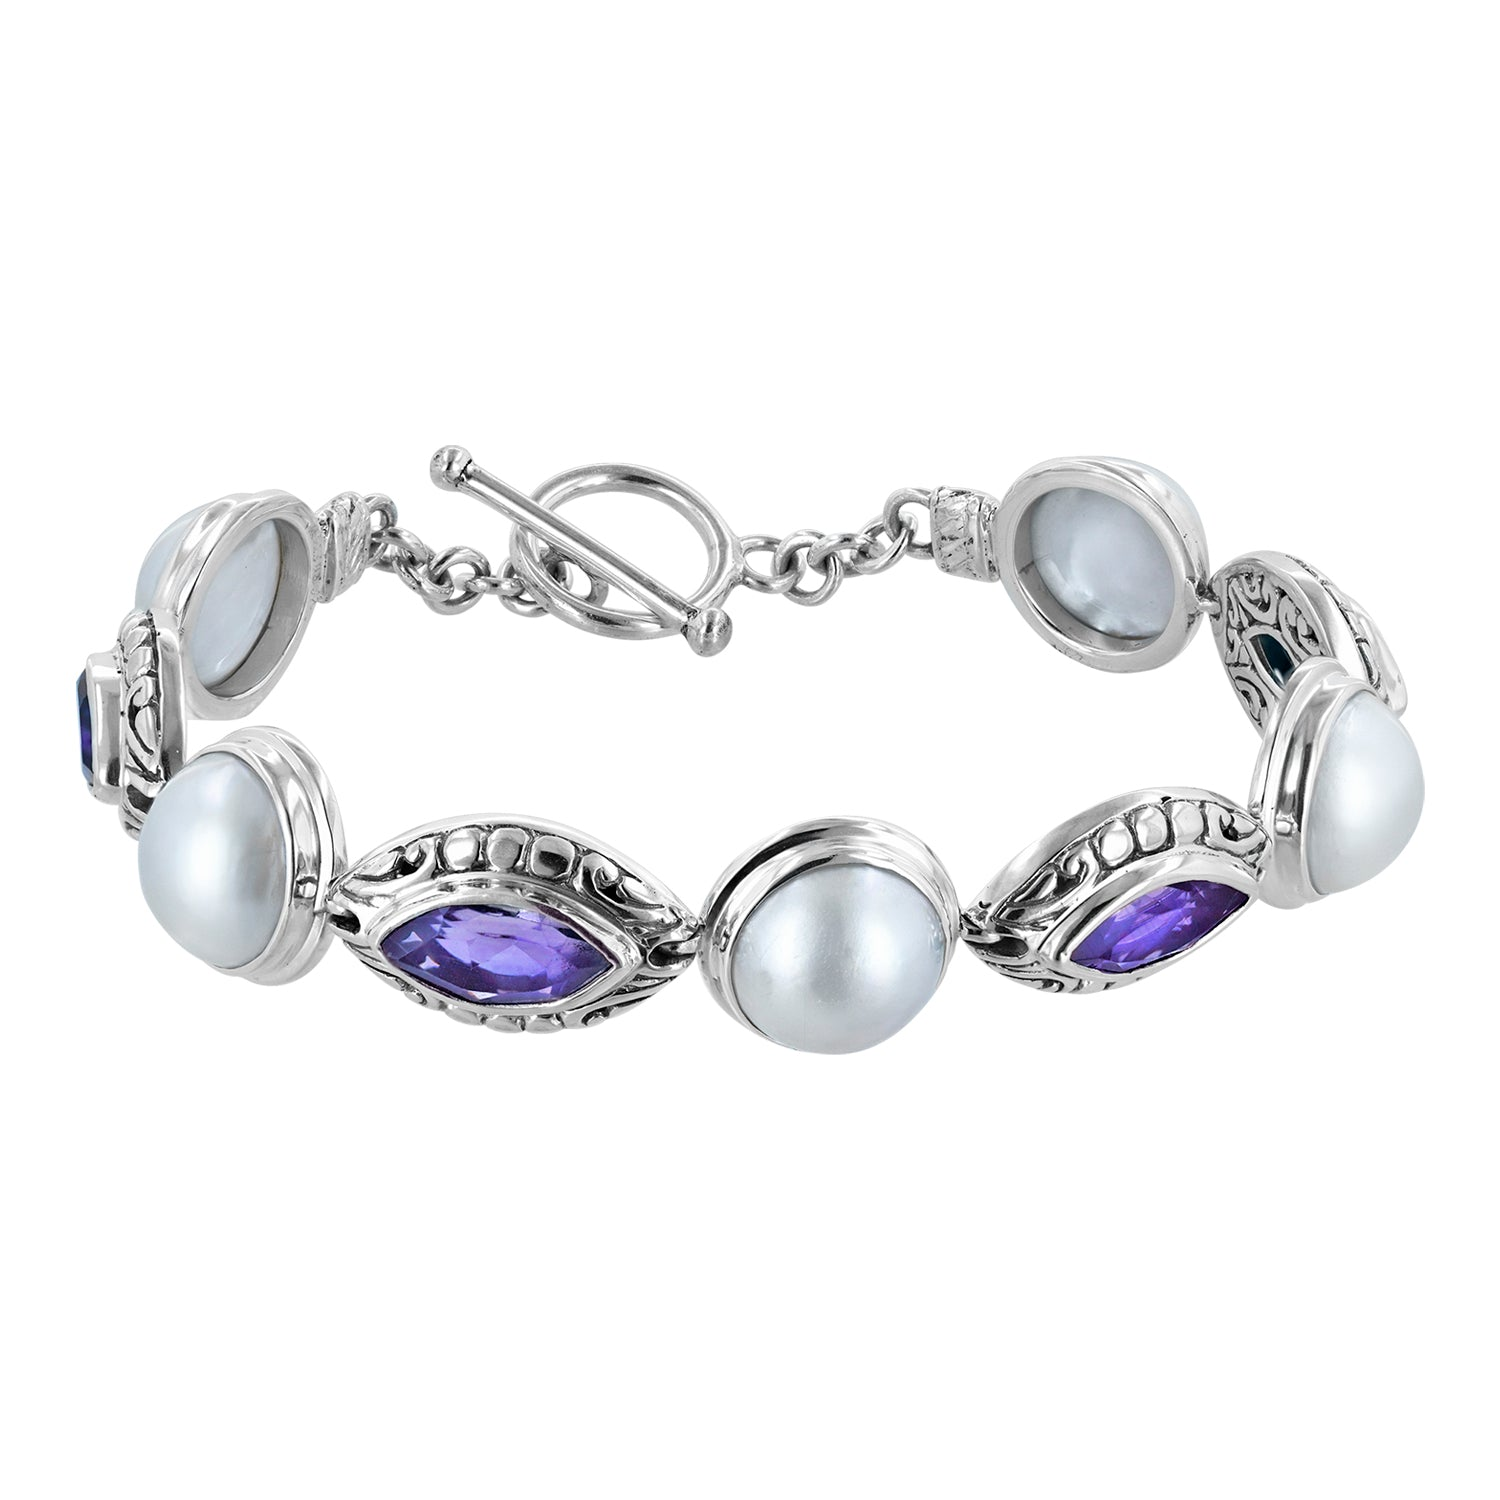 Marquis amethyst and round white mabe sterling silver toggle bracelet